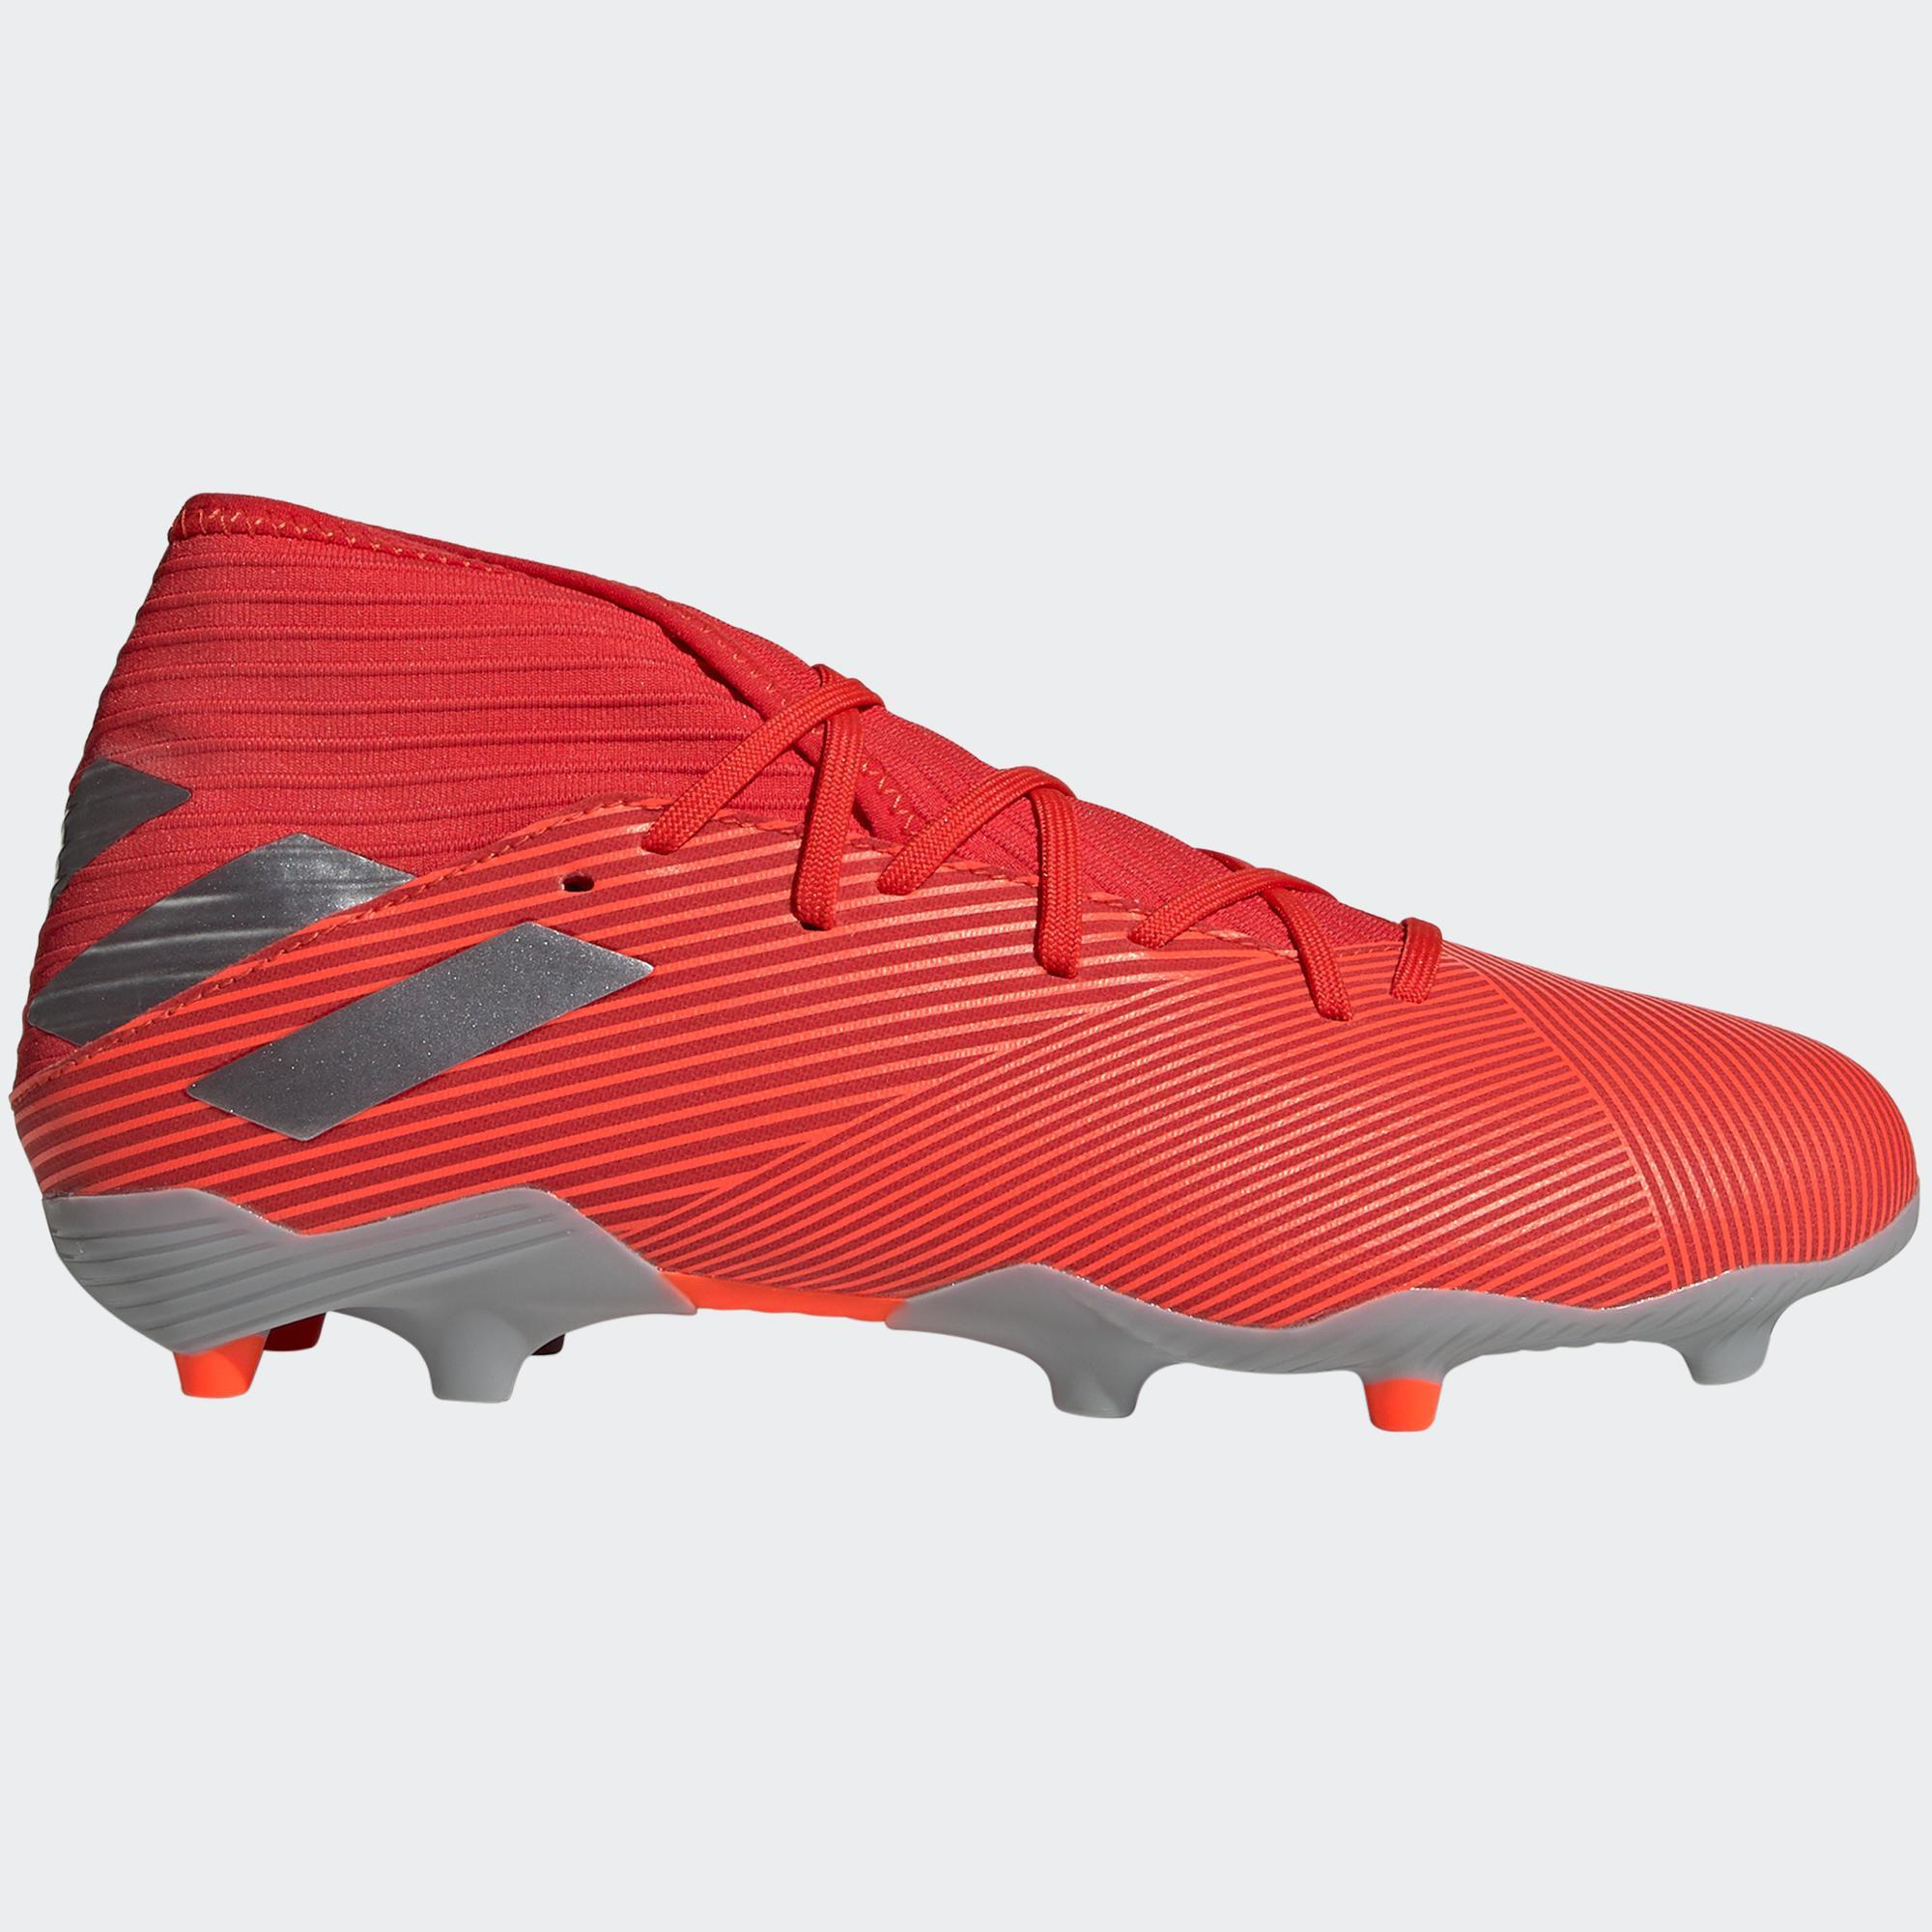 outlet online new arrive arrives Chaussures de football | Decathlon